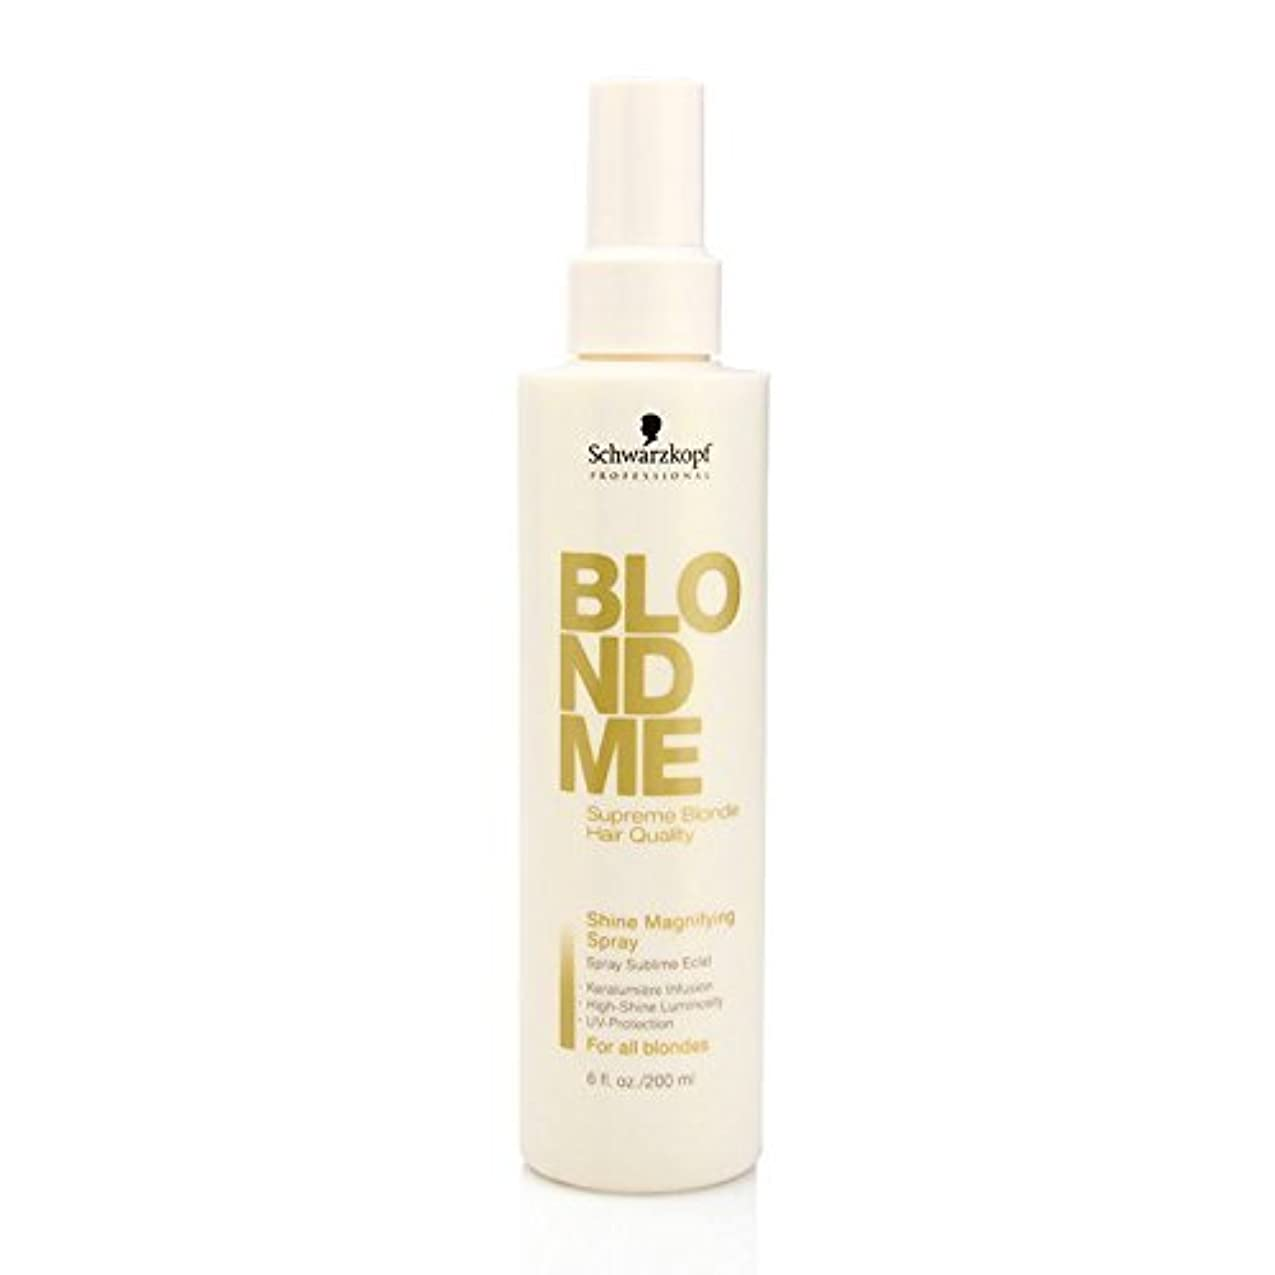 結婚式硬い価値by Blondme SHINE MAGINYING SPARY 6 OZ by BLONDME